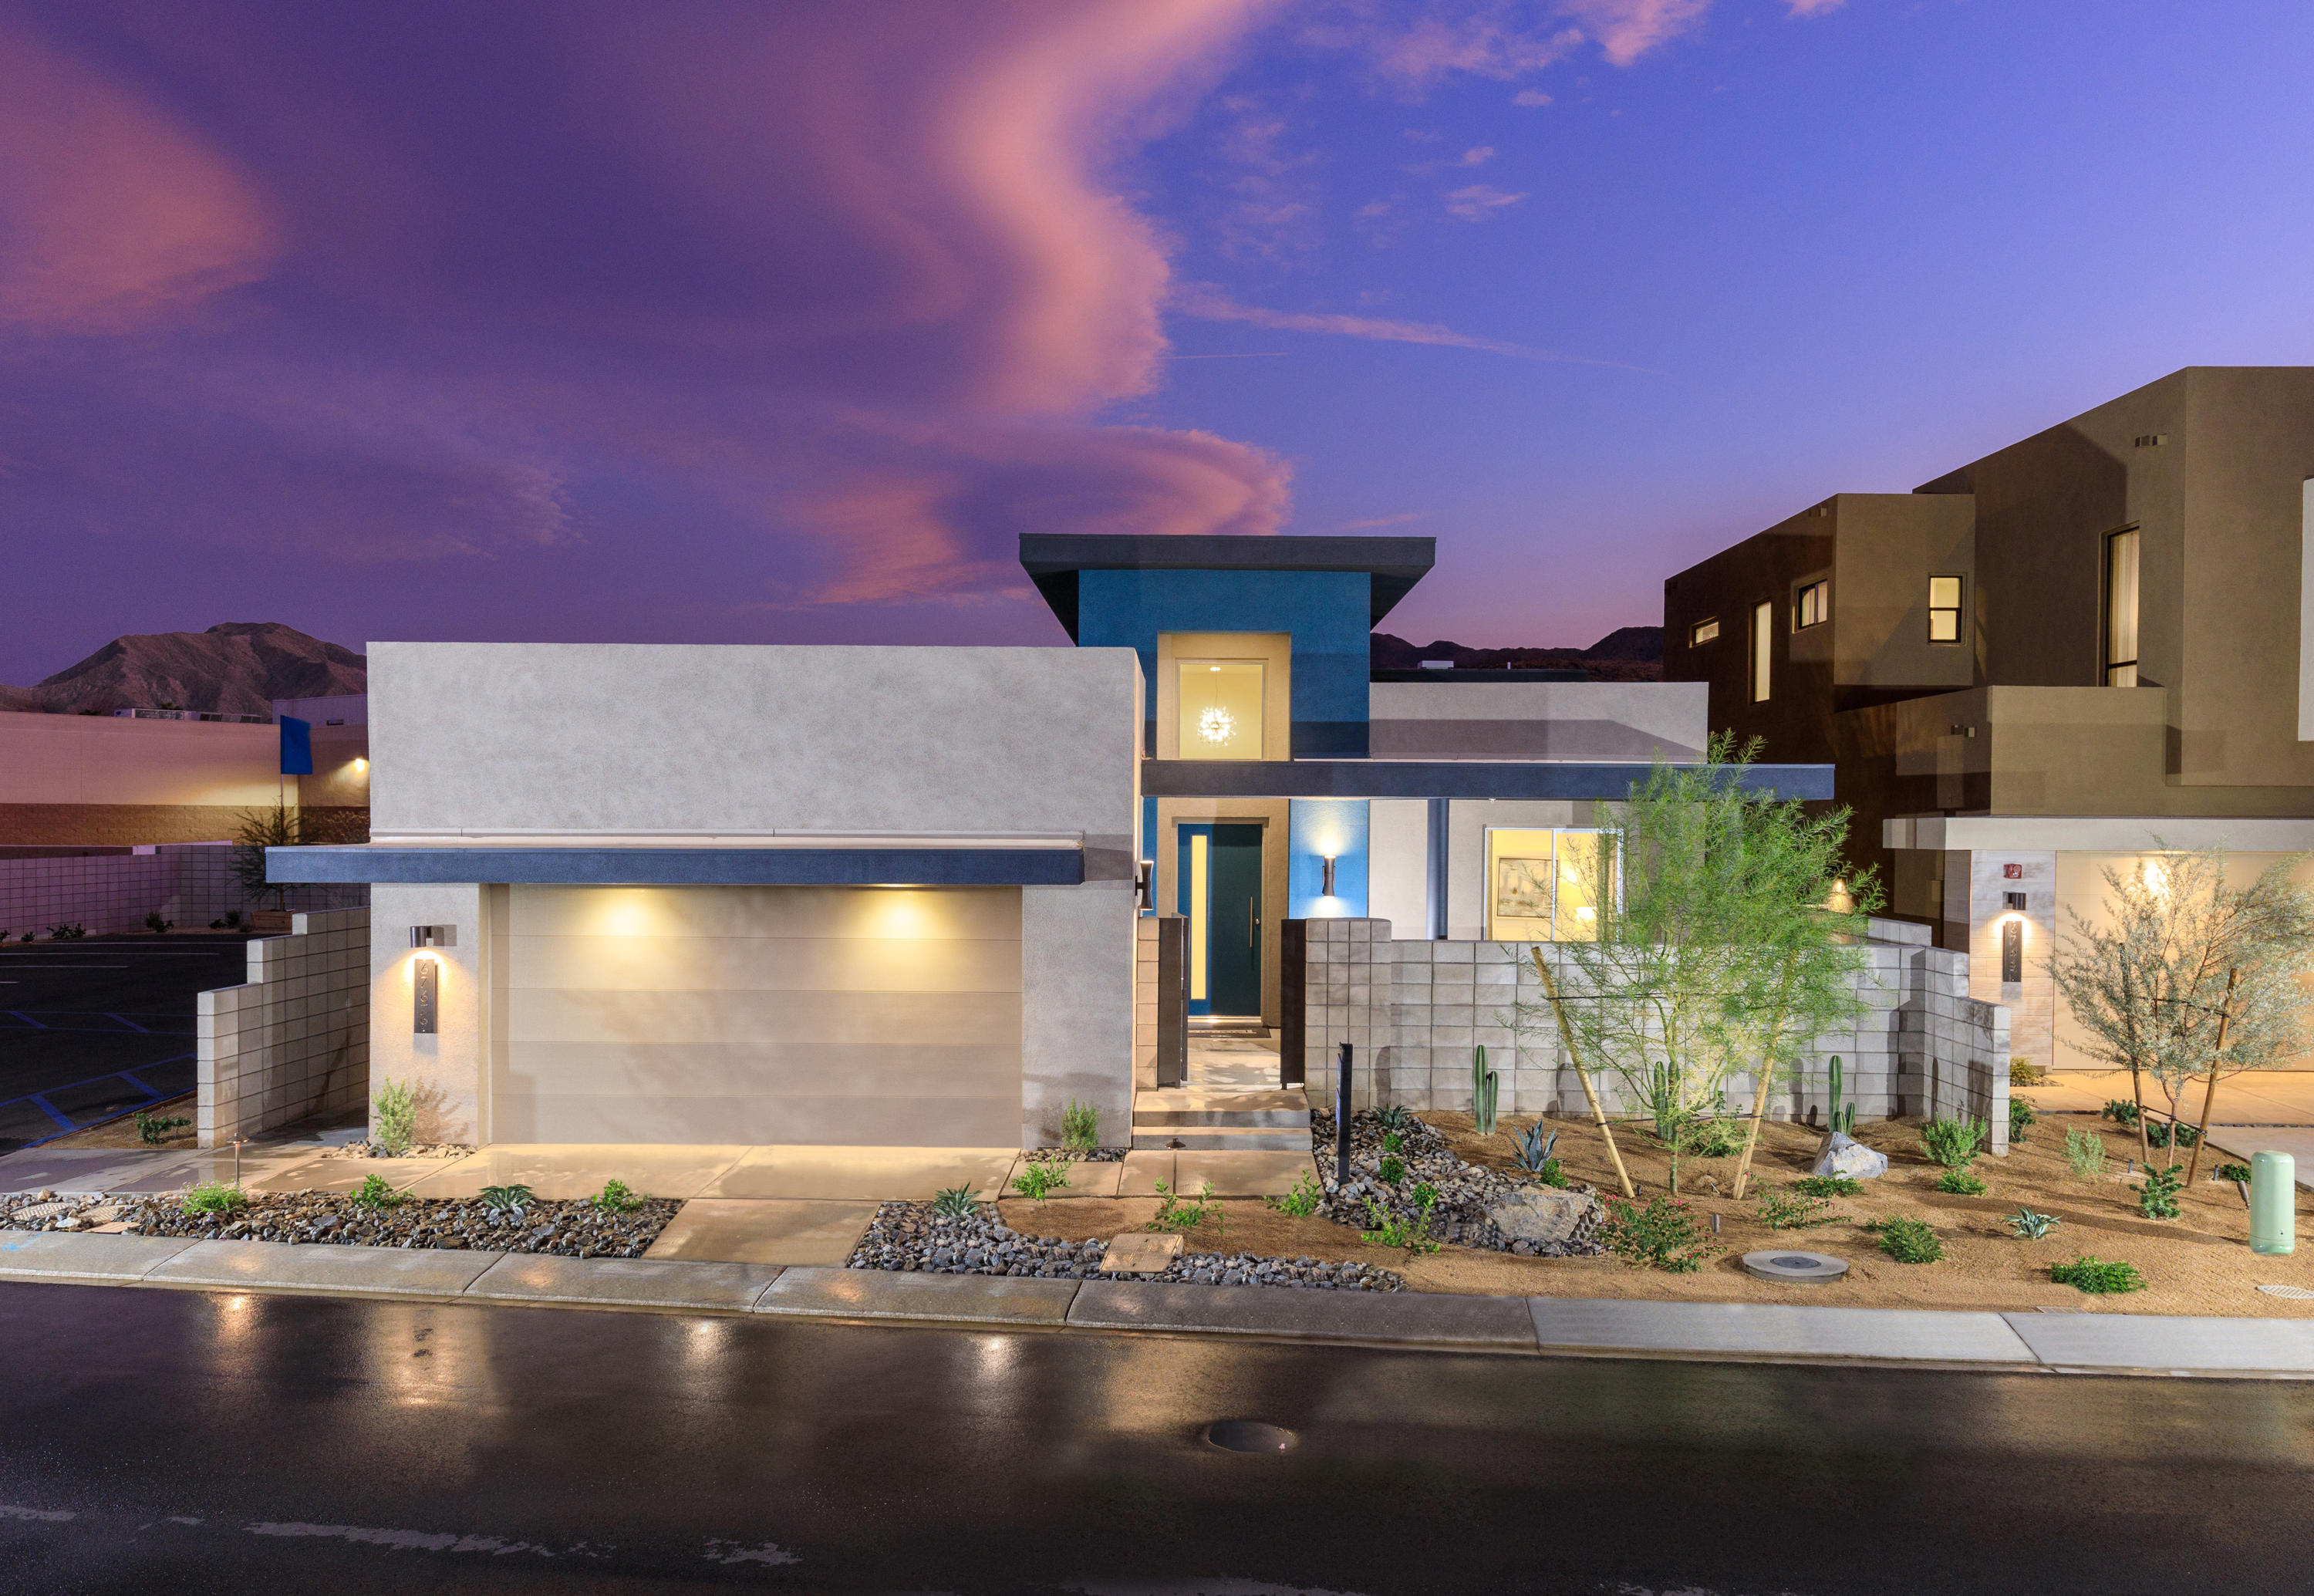 Welcome to District East, a boutique new home community on the edge of Palm Springs & Cathedral city.  Parker Premium Lot 15.  Q2 2021 move in! This Single Story Stunner boosts grand ceiling height, clerestory windows, light, bright and open. 2 bedrooms, a den or 3rd Bedroom and 3 baths at 1,836 Square Feet. Open concept 21 Century living, 8' low-e glass triple sliding glass doors that lead out to a beautiful patio. STANDARD - 24x24 designer porcelain tile flooring in all living areas and designer carpet in the bedrooms. Pre-wired for speakers in great room, outdoor living, and master bedroom. Social Kitchen with quartz countertops and backsplash. All Kitchen appliances included. Fireplace, pool and spa all included! The list goes on and on, these homes really are a must see. Call today to book an appointment! Photos are of Model Home rendering colors/options may vary